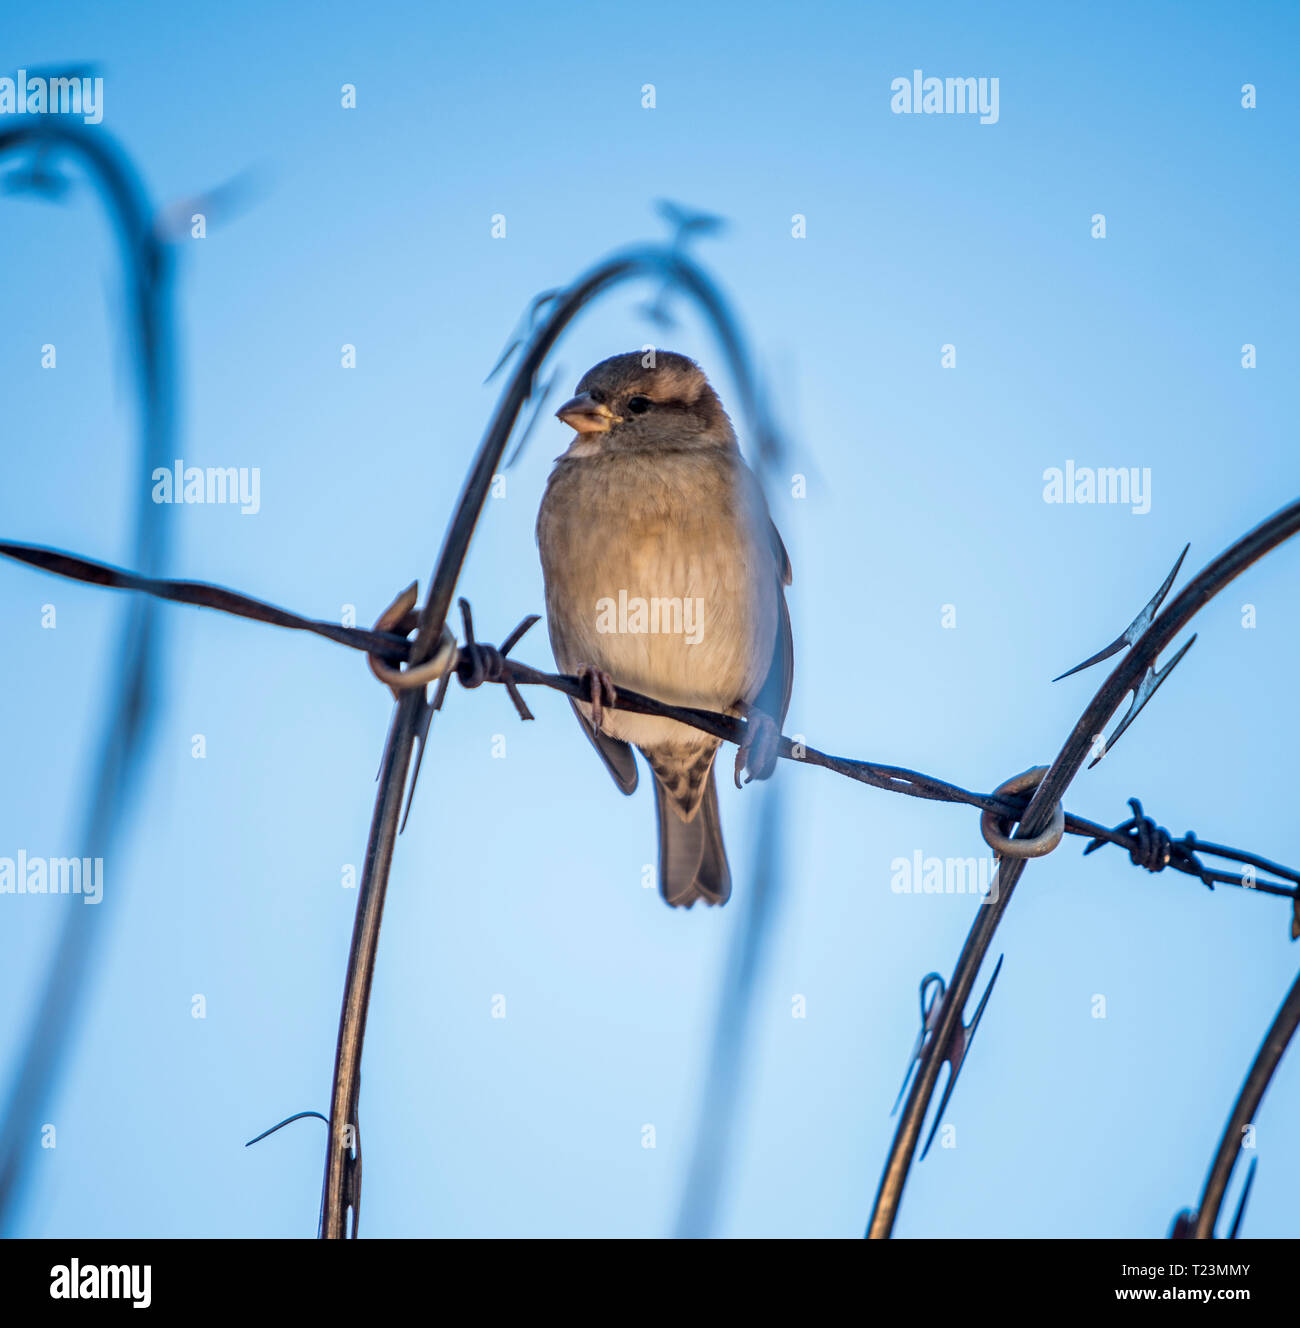 Sparrow bird on barbed wire - Stock Image